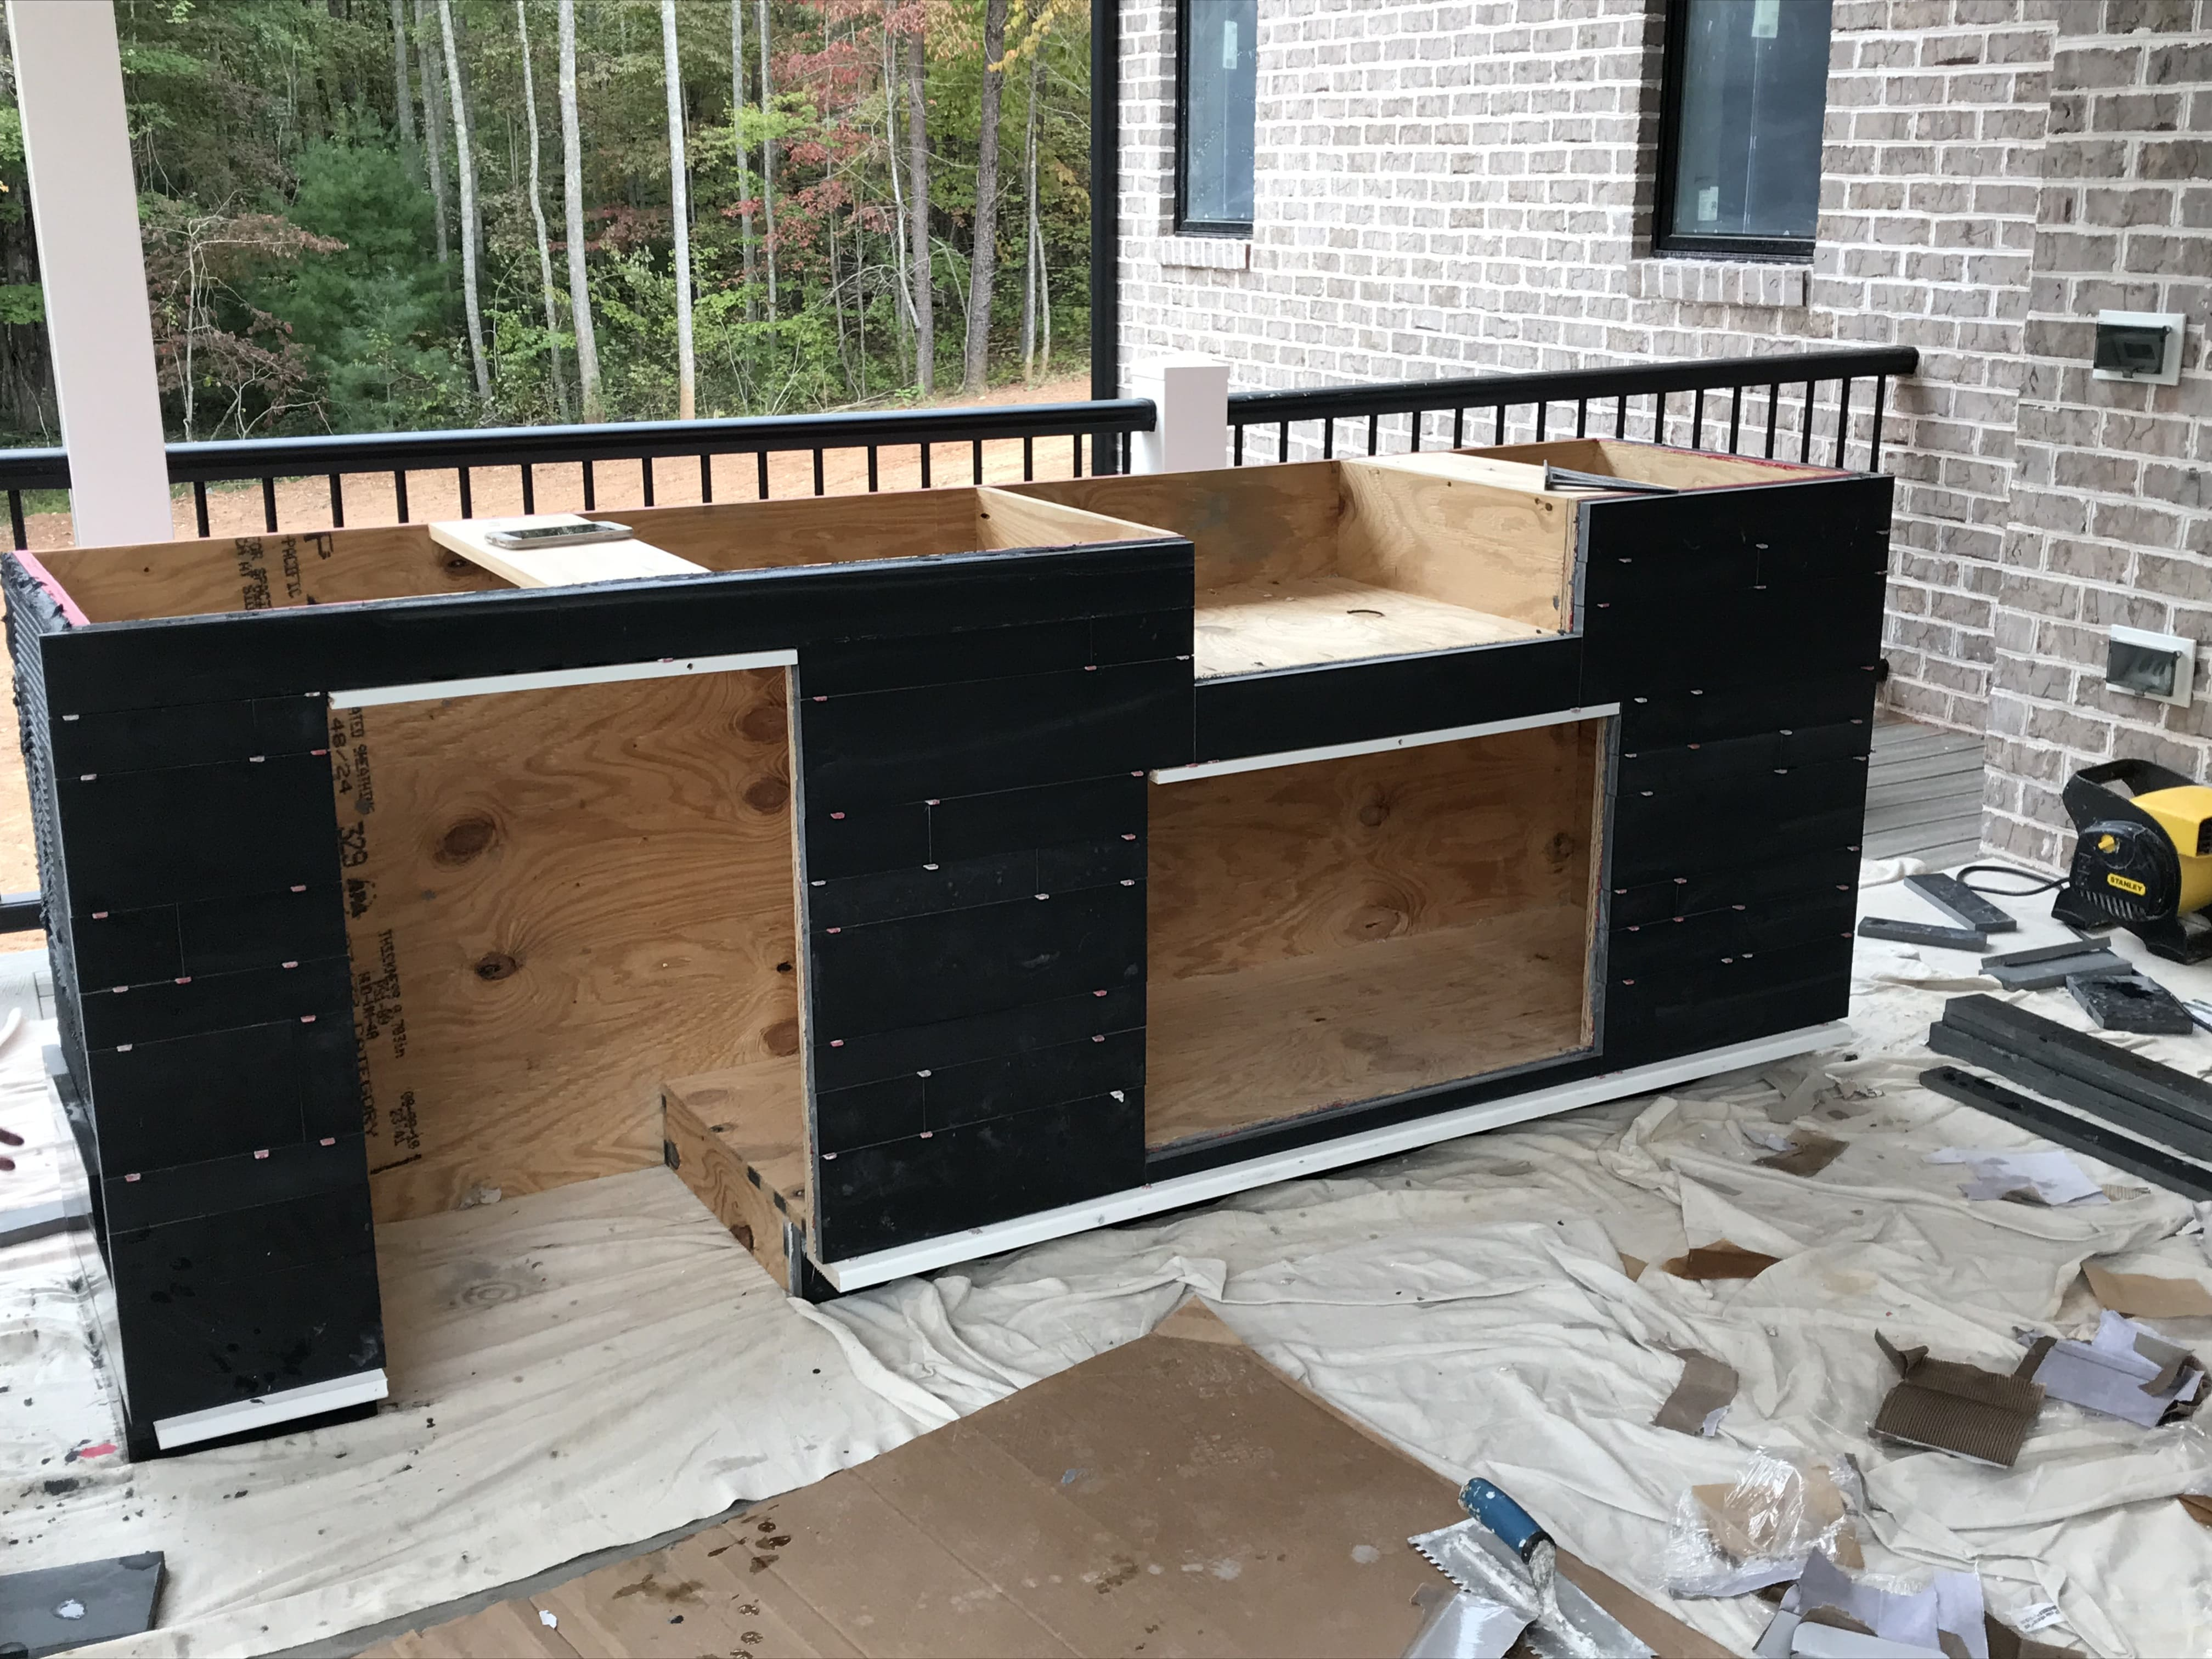 Norstone Ebony Planc Large Format Tile Being installated on a residential outdoor kitchen project